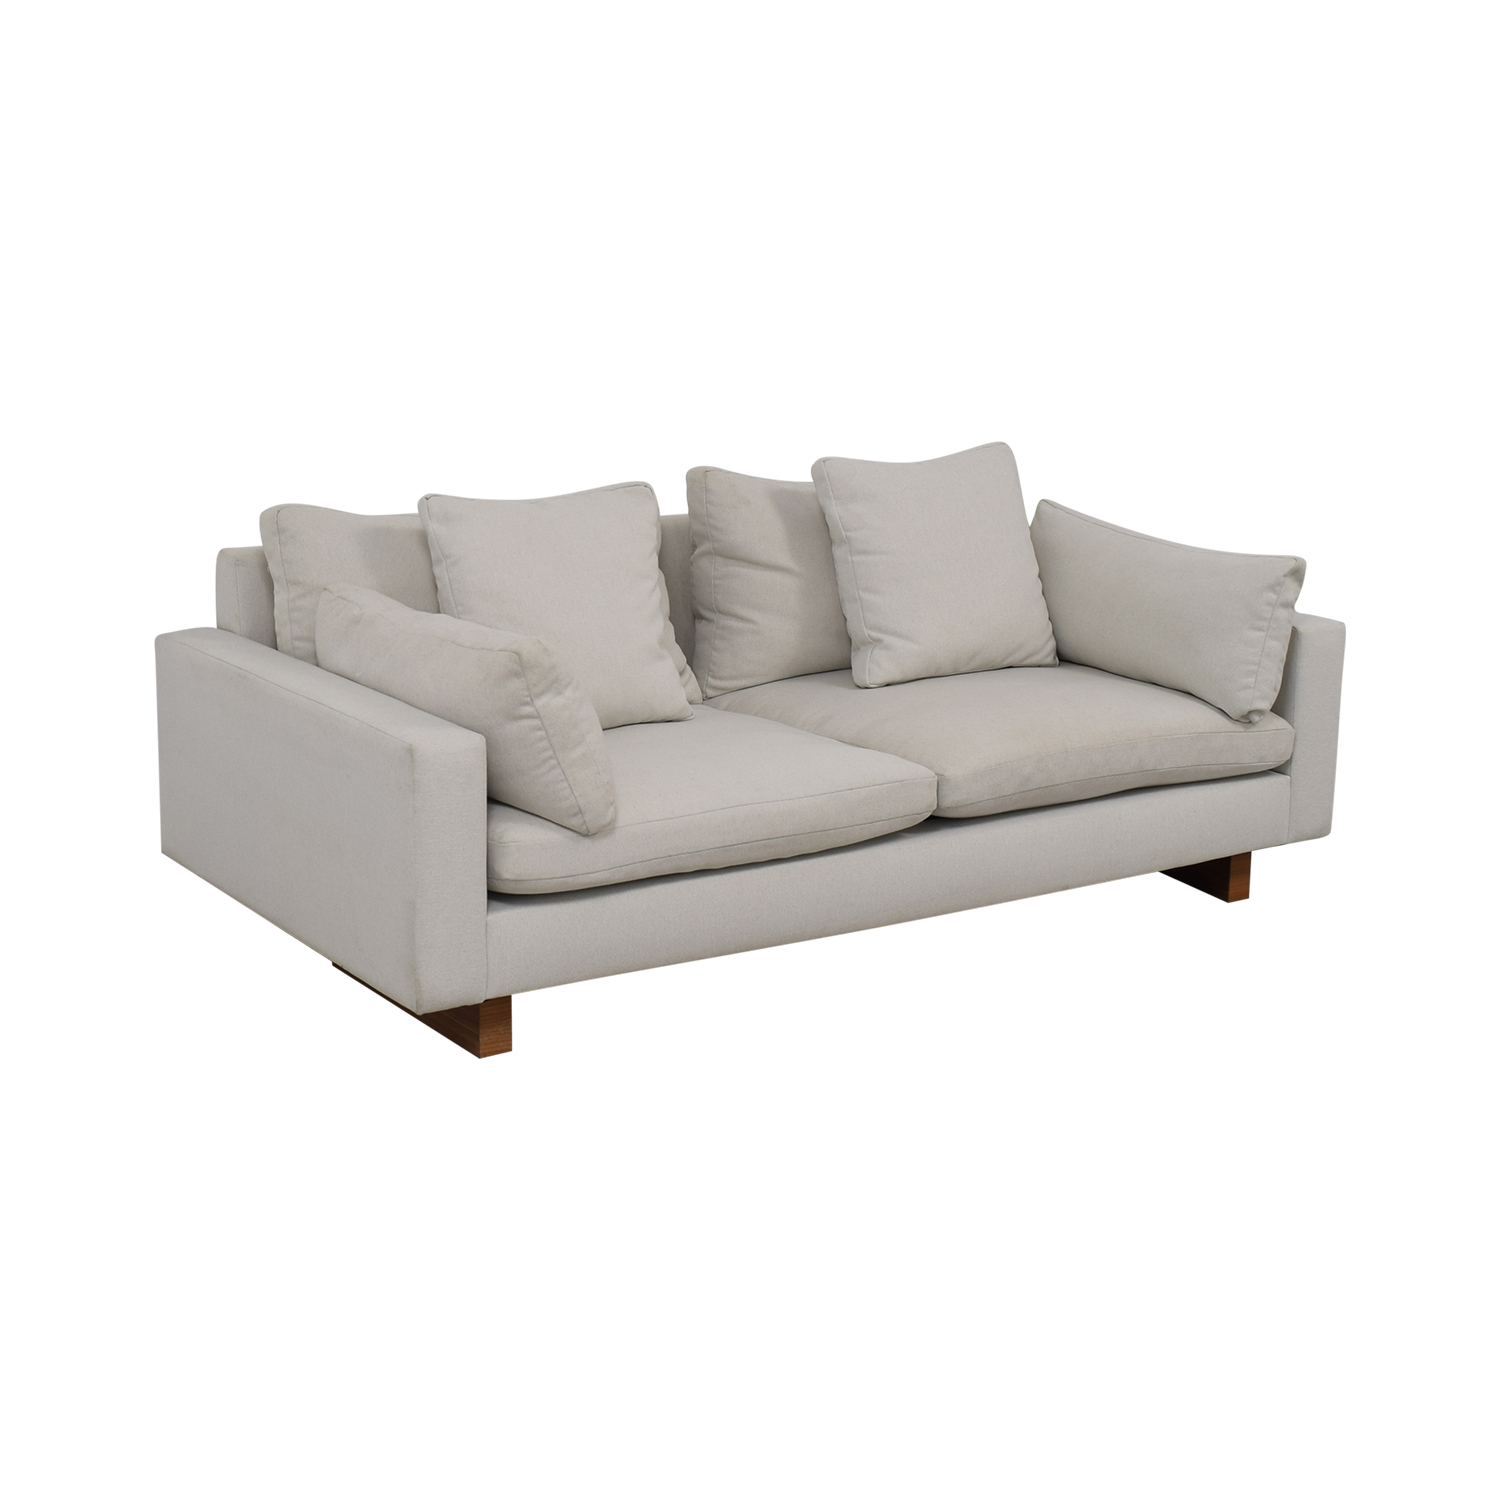 56 Off West Elm West Elm Harmony Down Filled Sofa Sofas